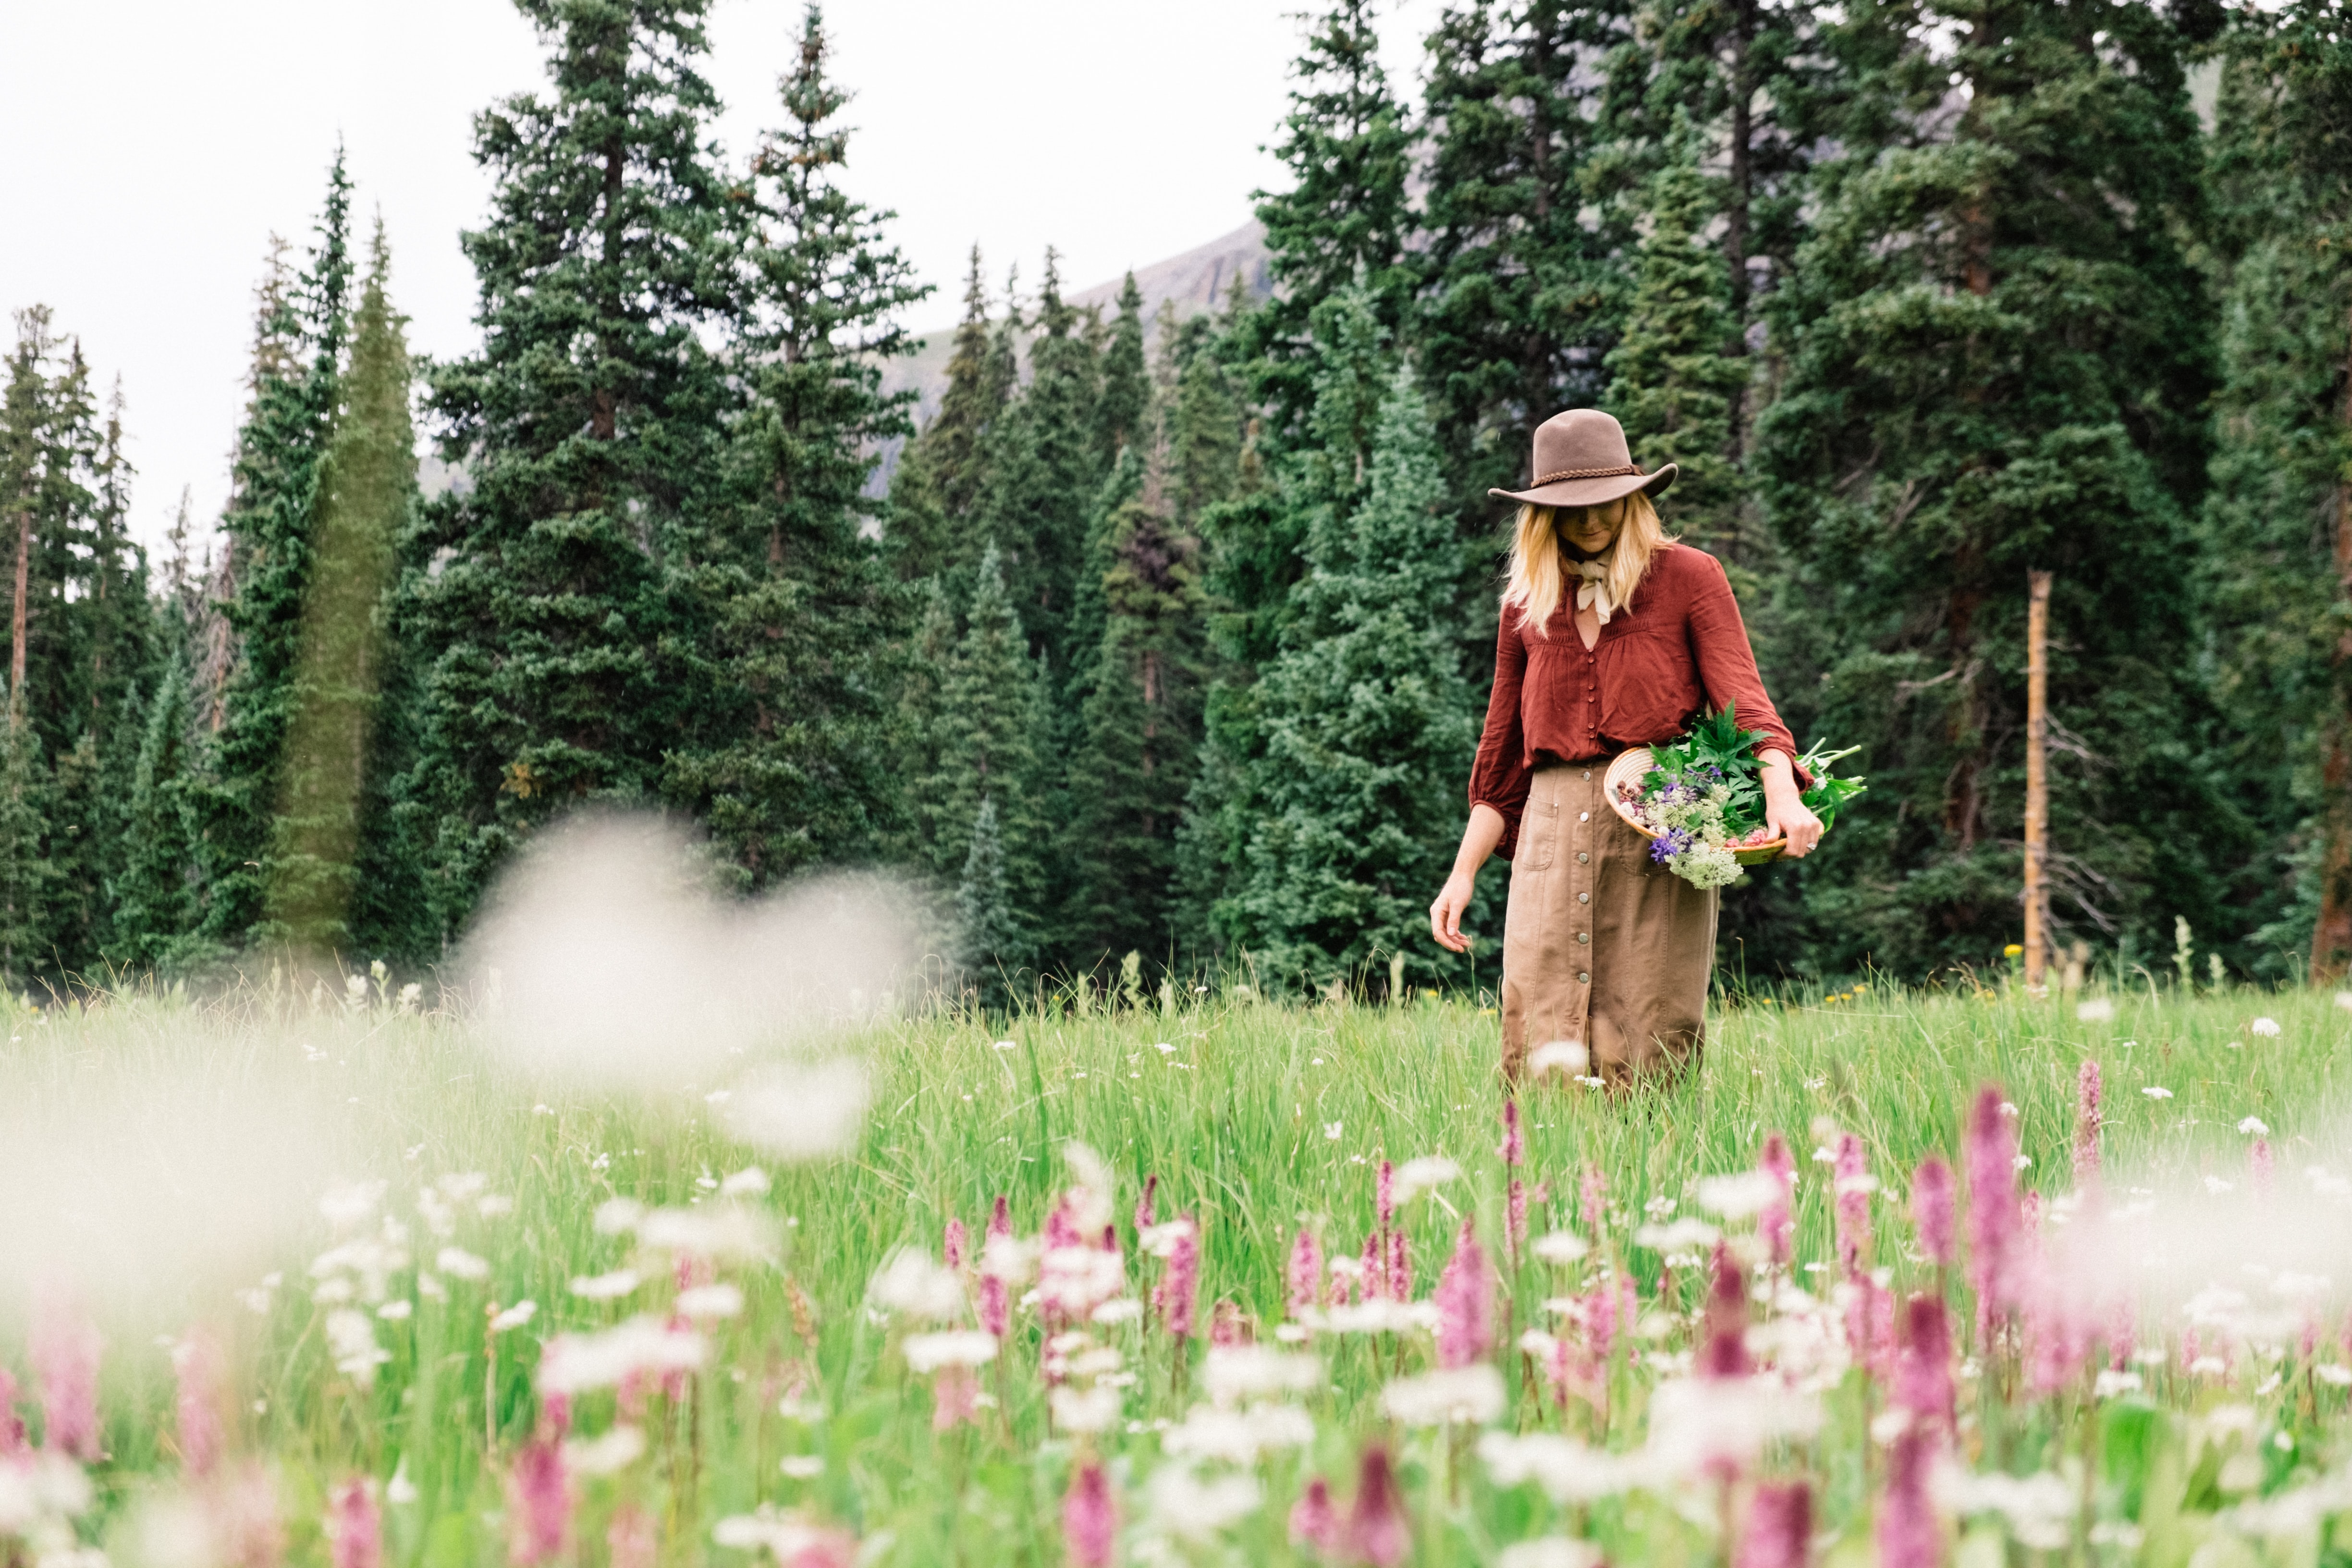 A woman in a hat walks through a meadow, holding a basket of flowers